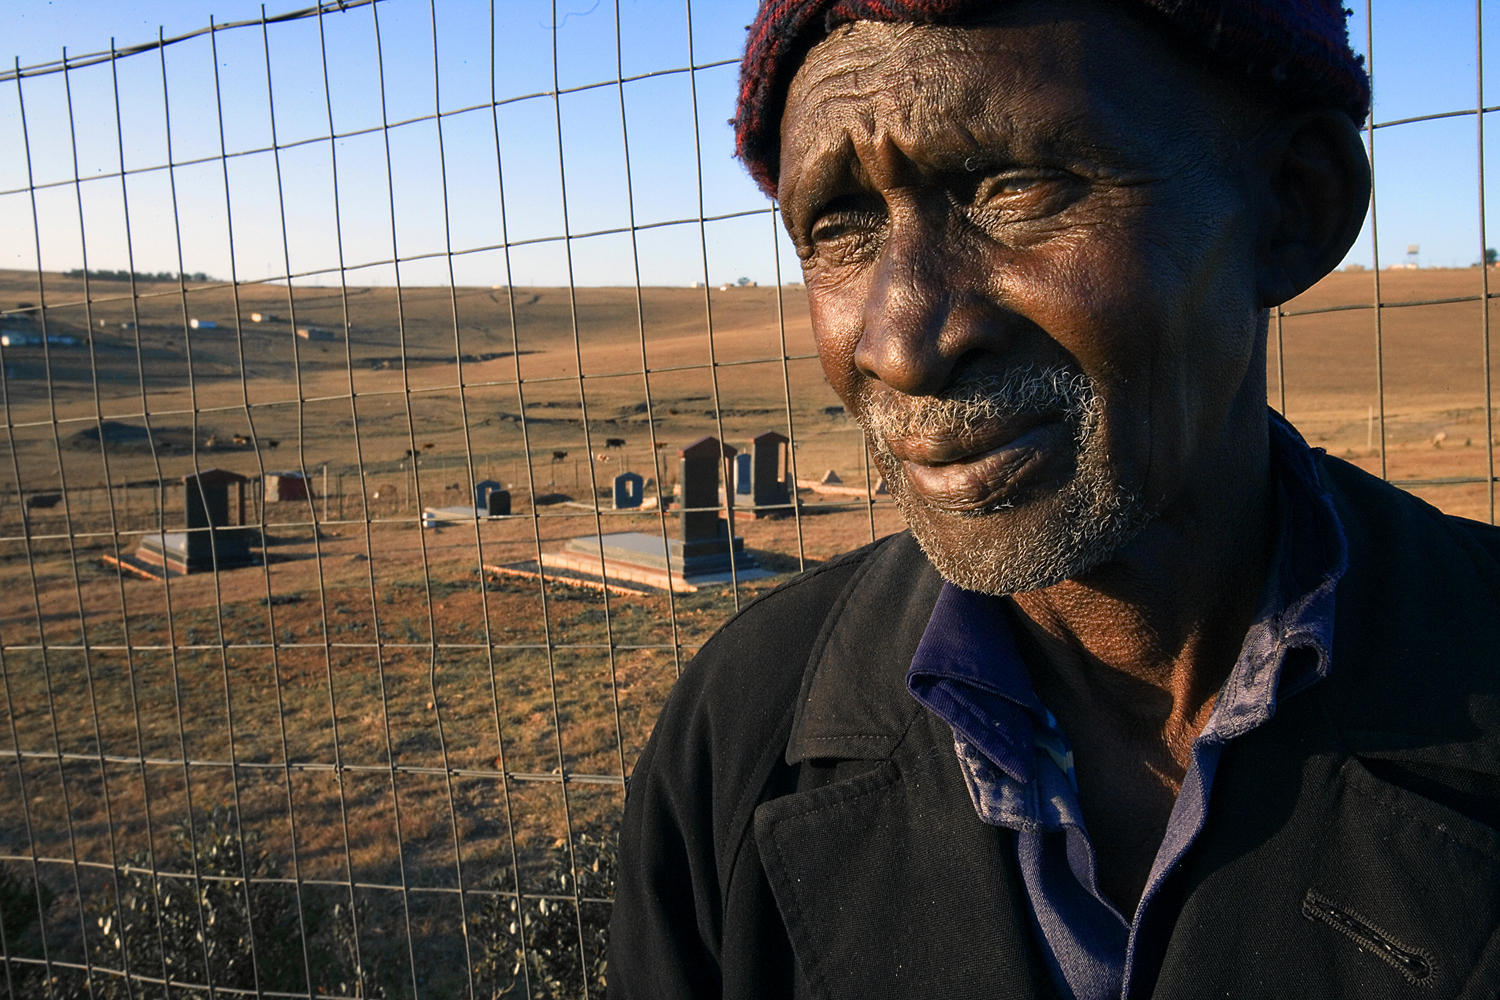 On a hillside outside of Qunu in the Transkei, a man who referred to himself as one of Mandela's brothers, stands in front of the family cemetery where it is commonly thought Mandela will be buried. 2007.